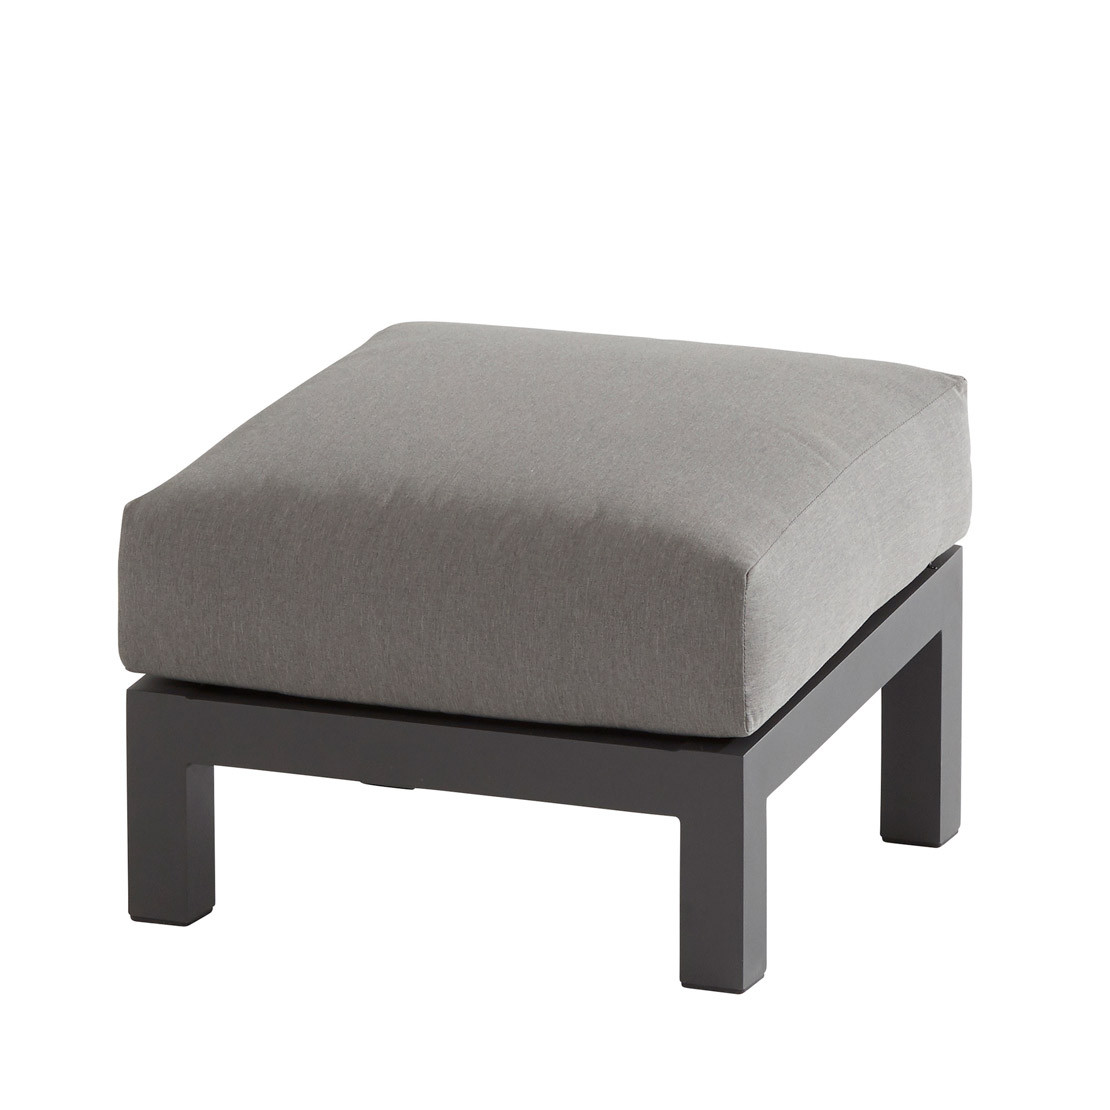 Capitol footstool with cushion Anthracite